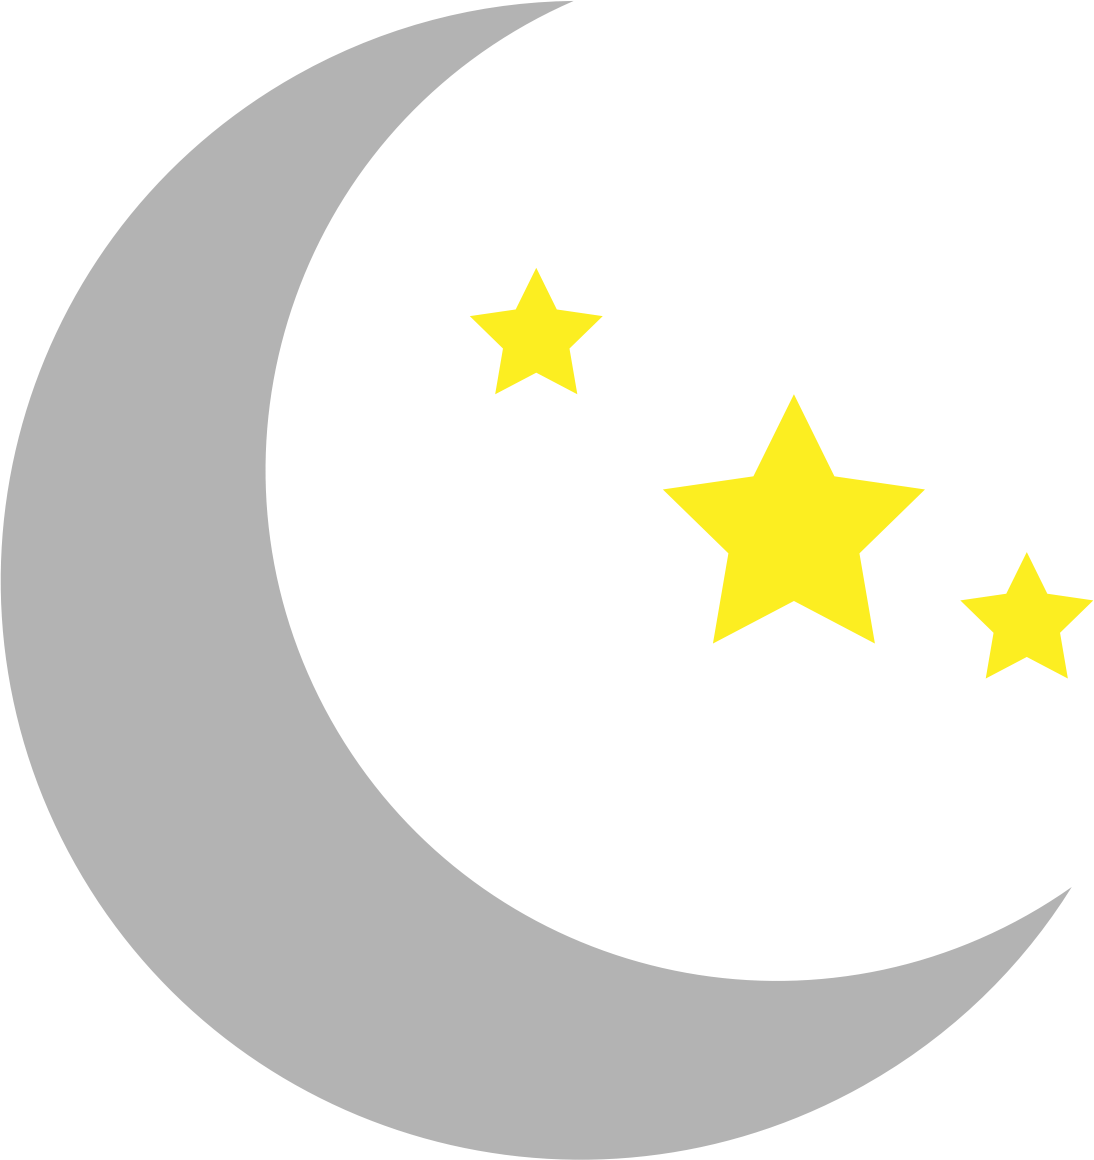 Free moon and star clipart clip black and white stock Crescent Moon And Star Pictures | Free download best Crescent Moon ... clip black and white stock